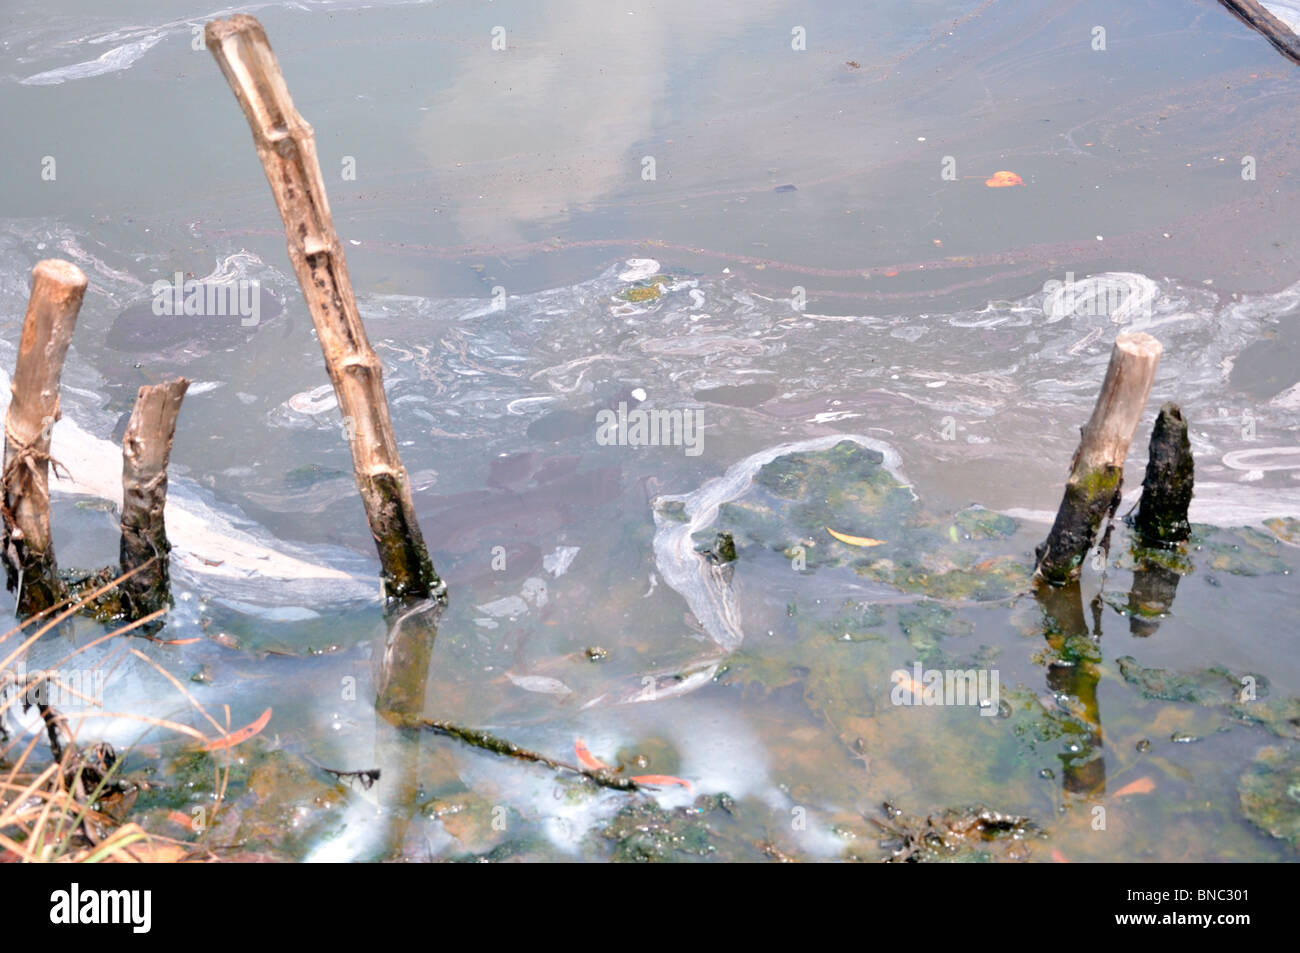 Discharged Waste - Stock Image